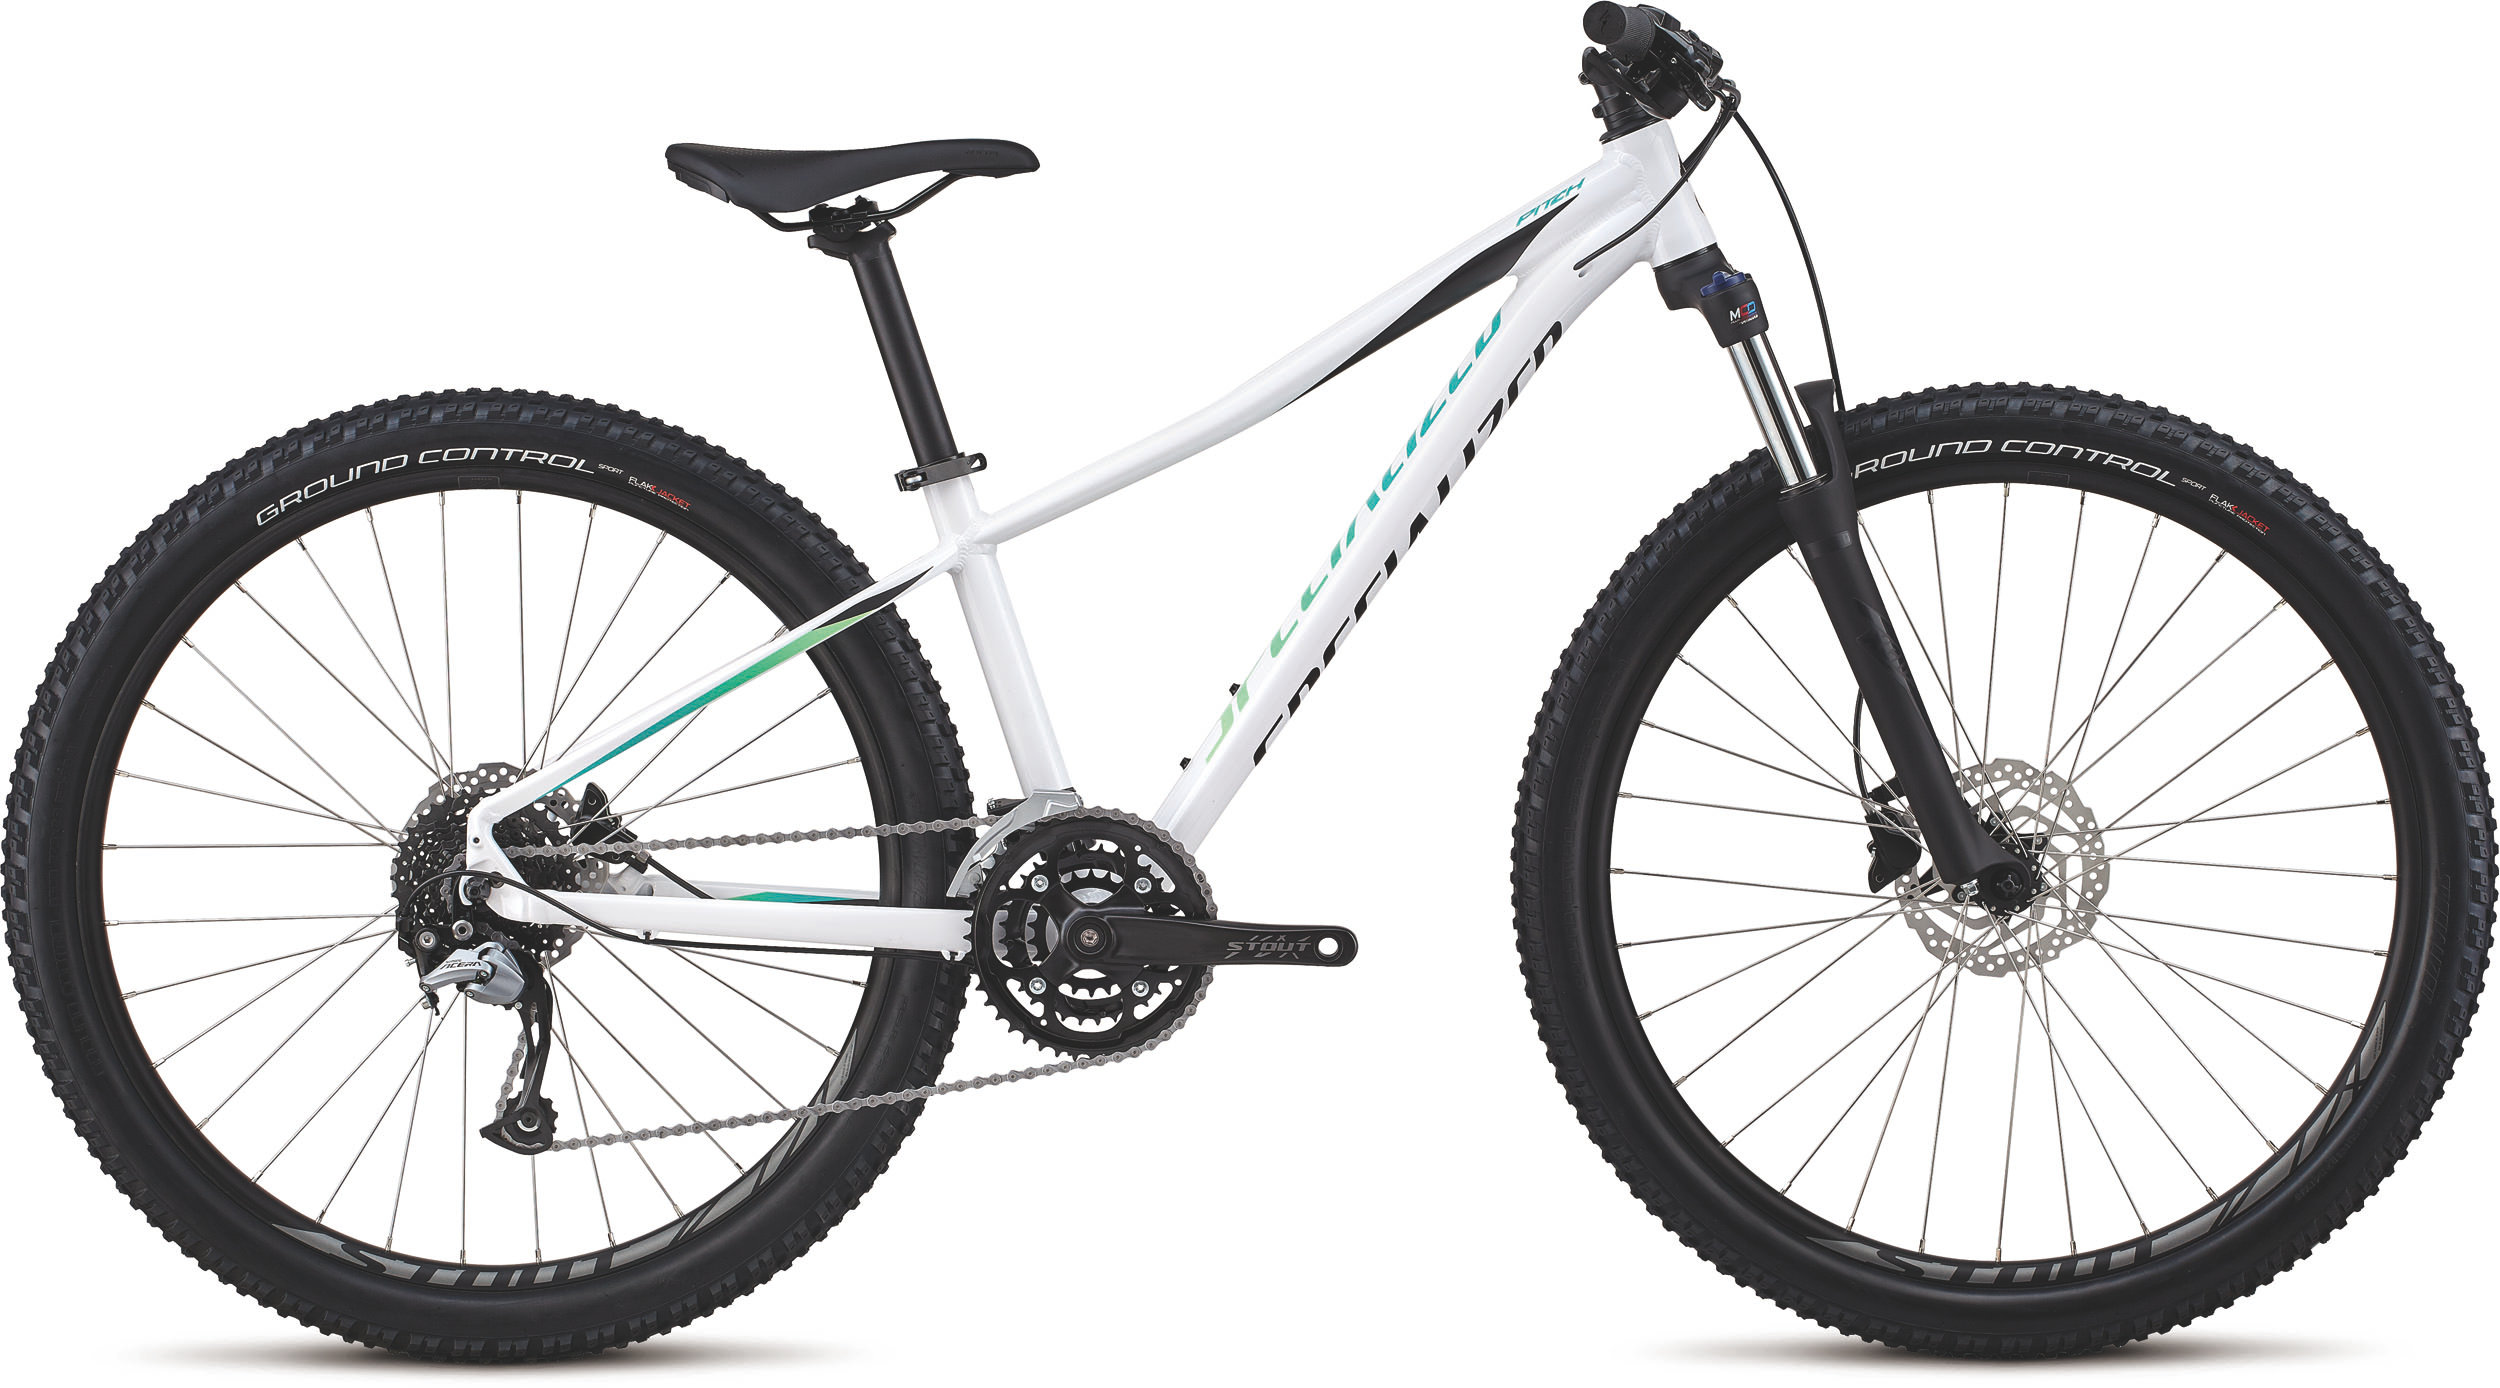 Specialized Women´s Pitch Comp 27.5 Gloss/Satin/White/Cali Fade Decals /Blk XS - Bike Maniac